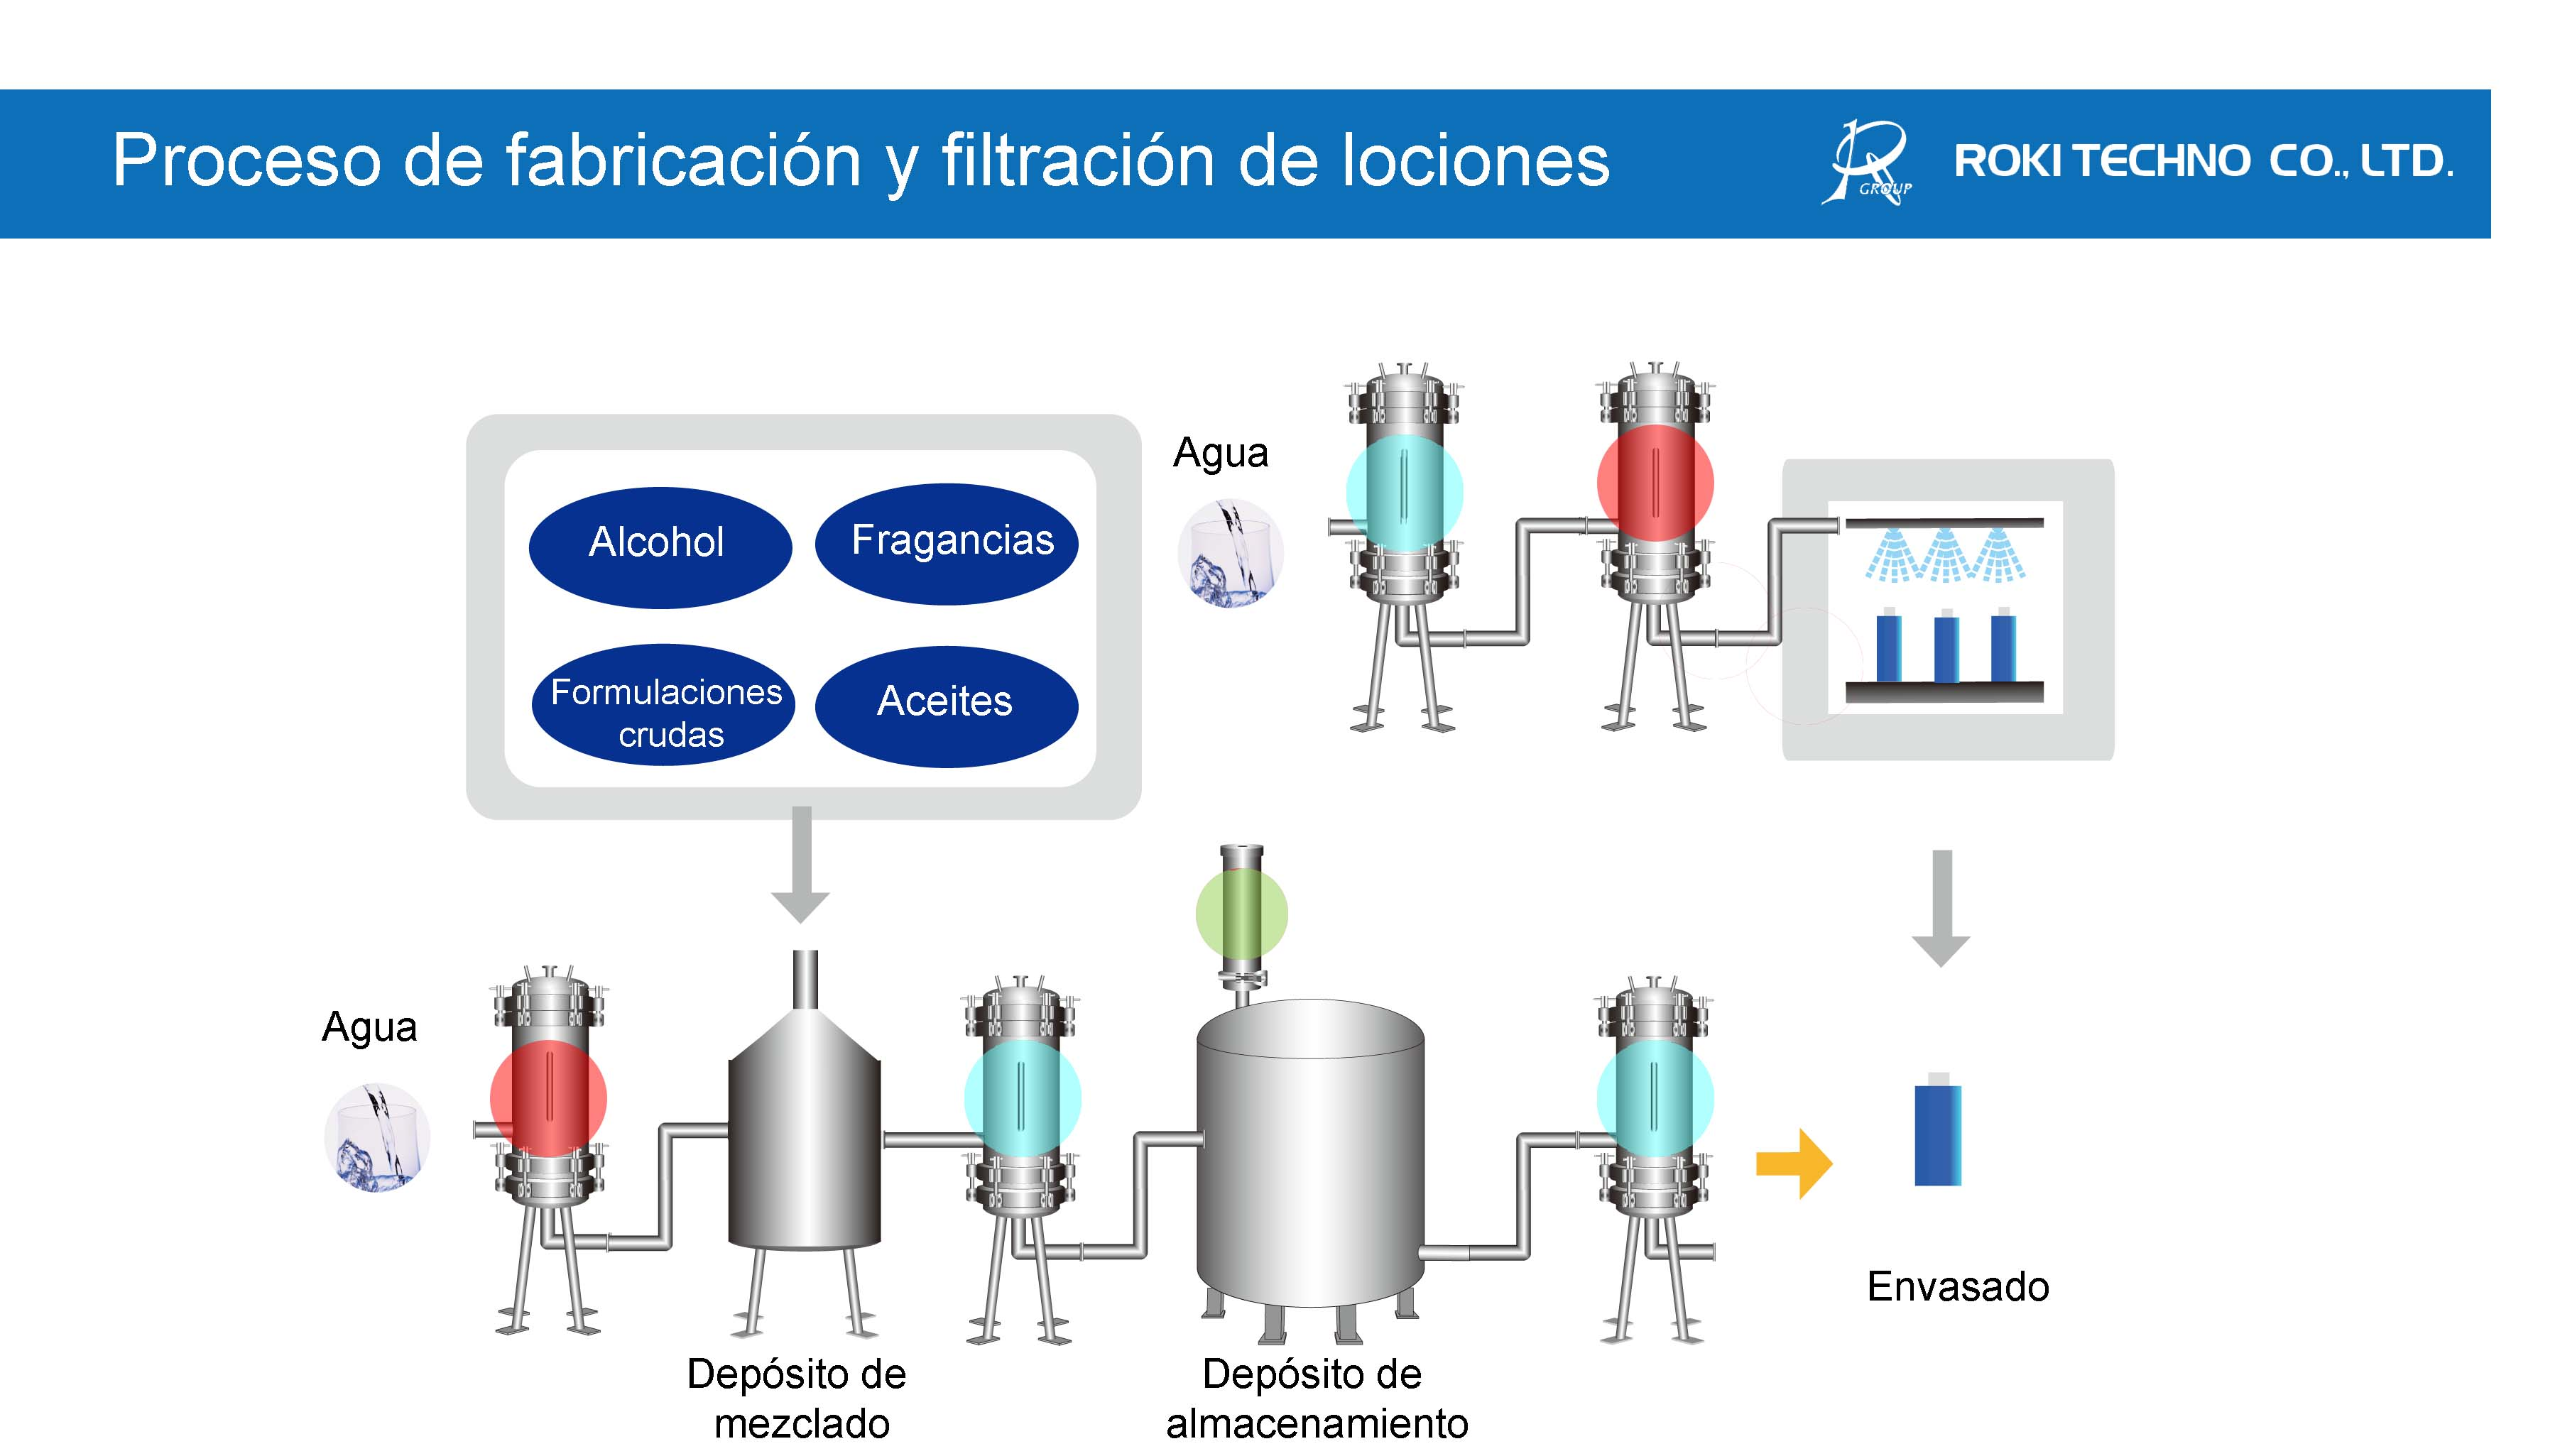 Lotion manufacturing process